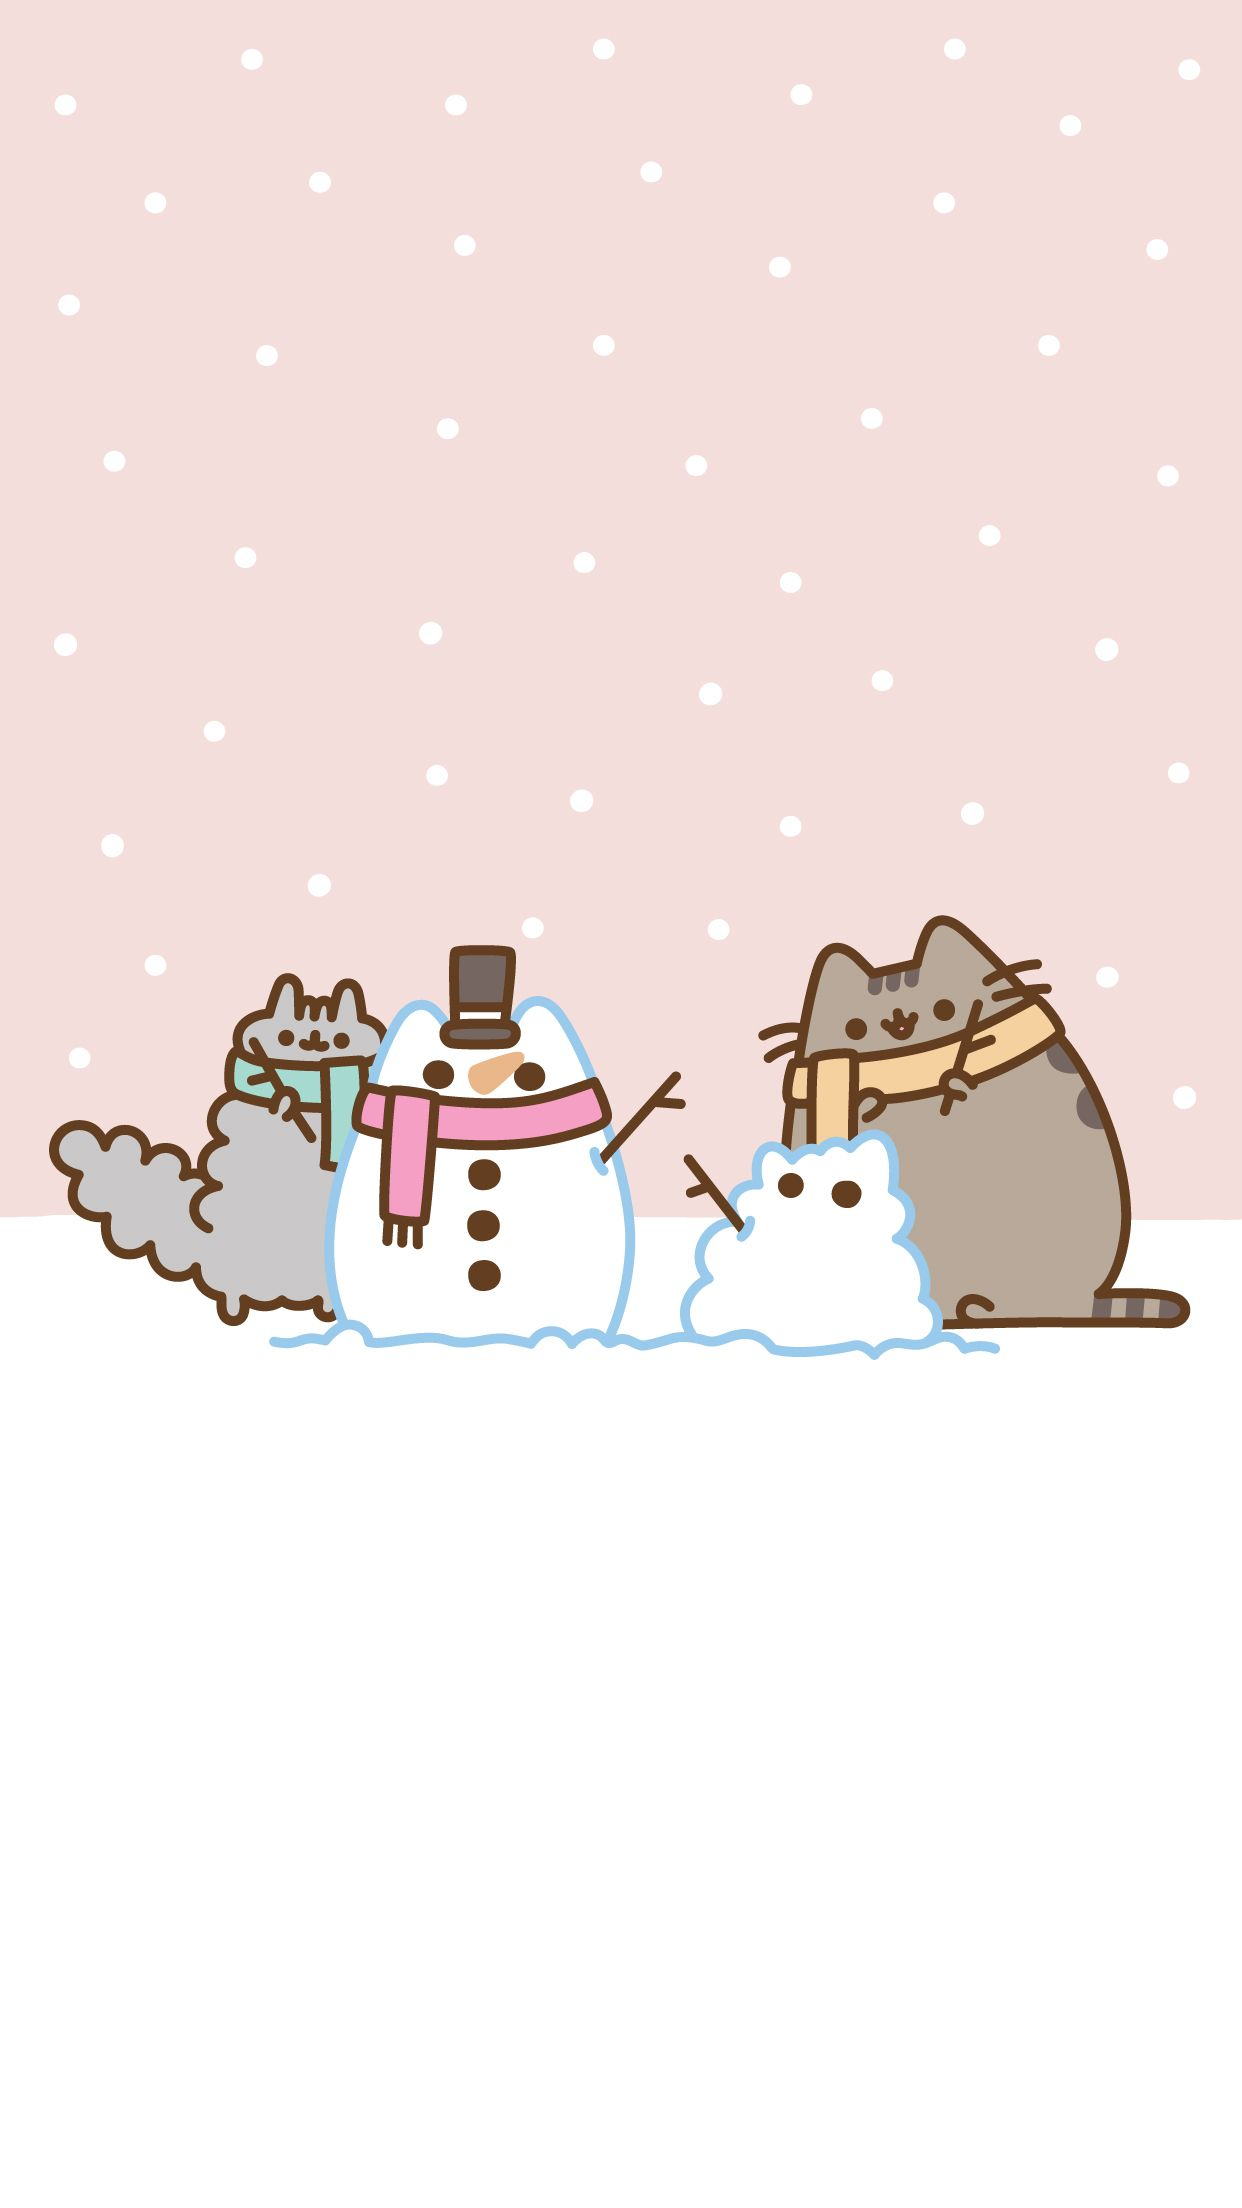 Pusheen and stormy building snowcat replicas of each other